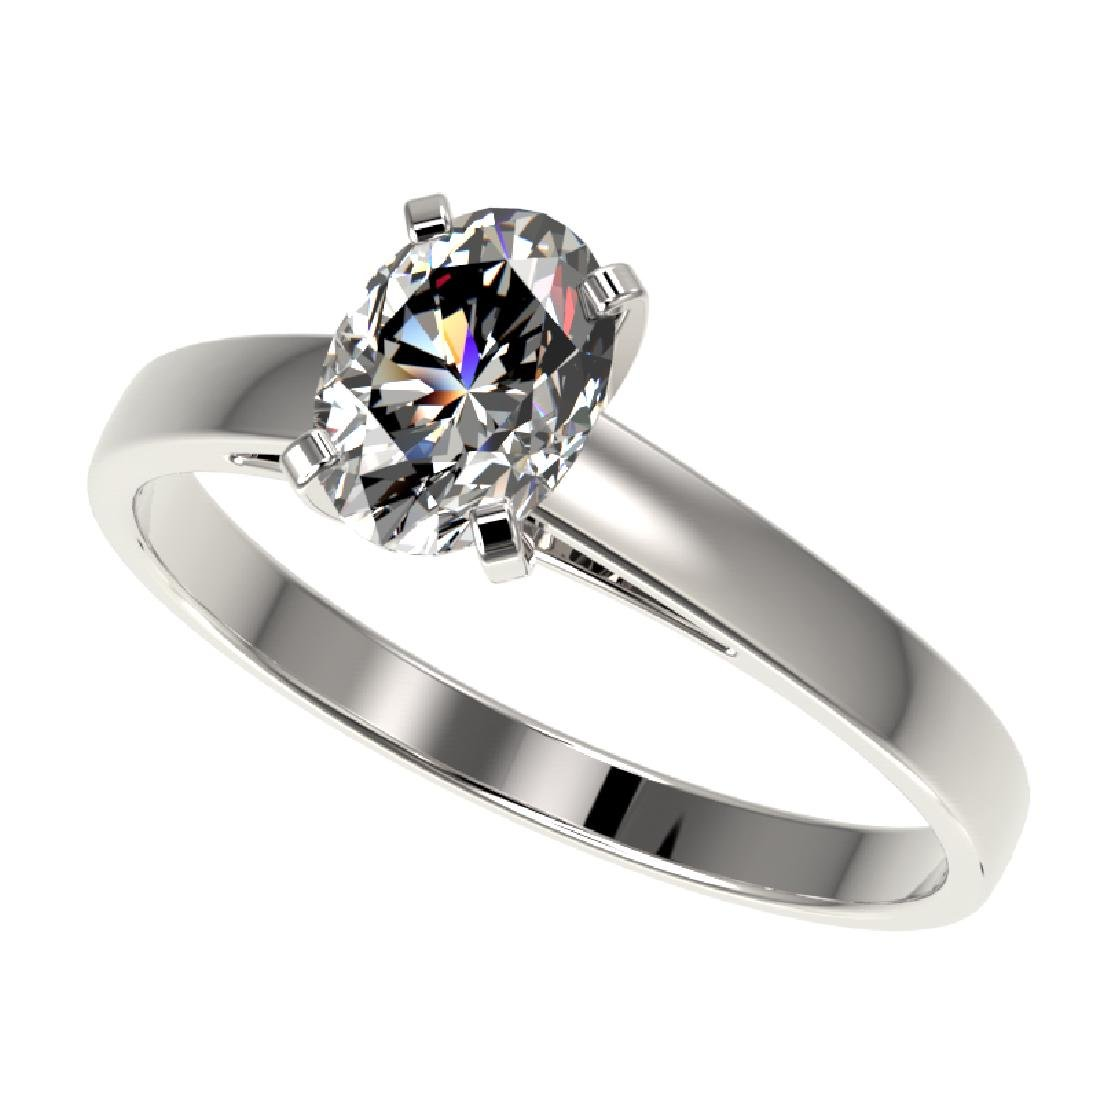 1 CTW Certified VS/SI Quality Oval Diamond Solitaire